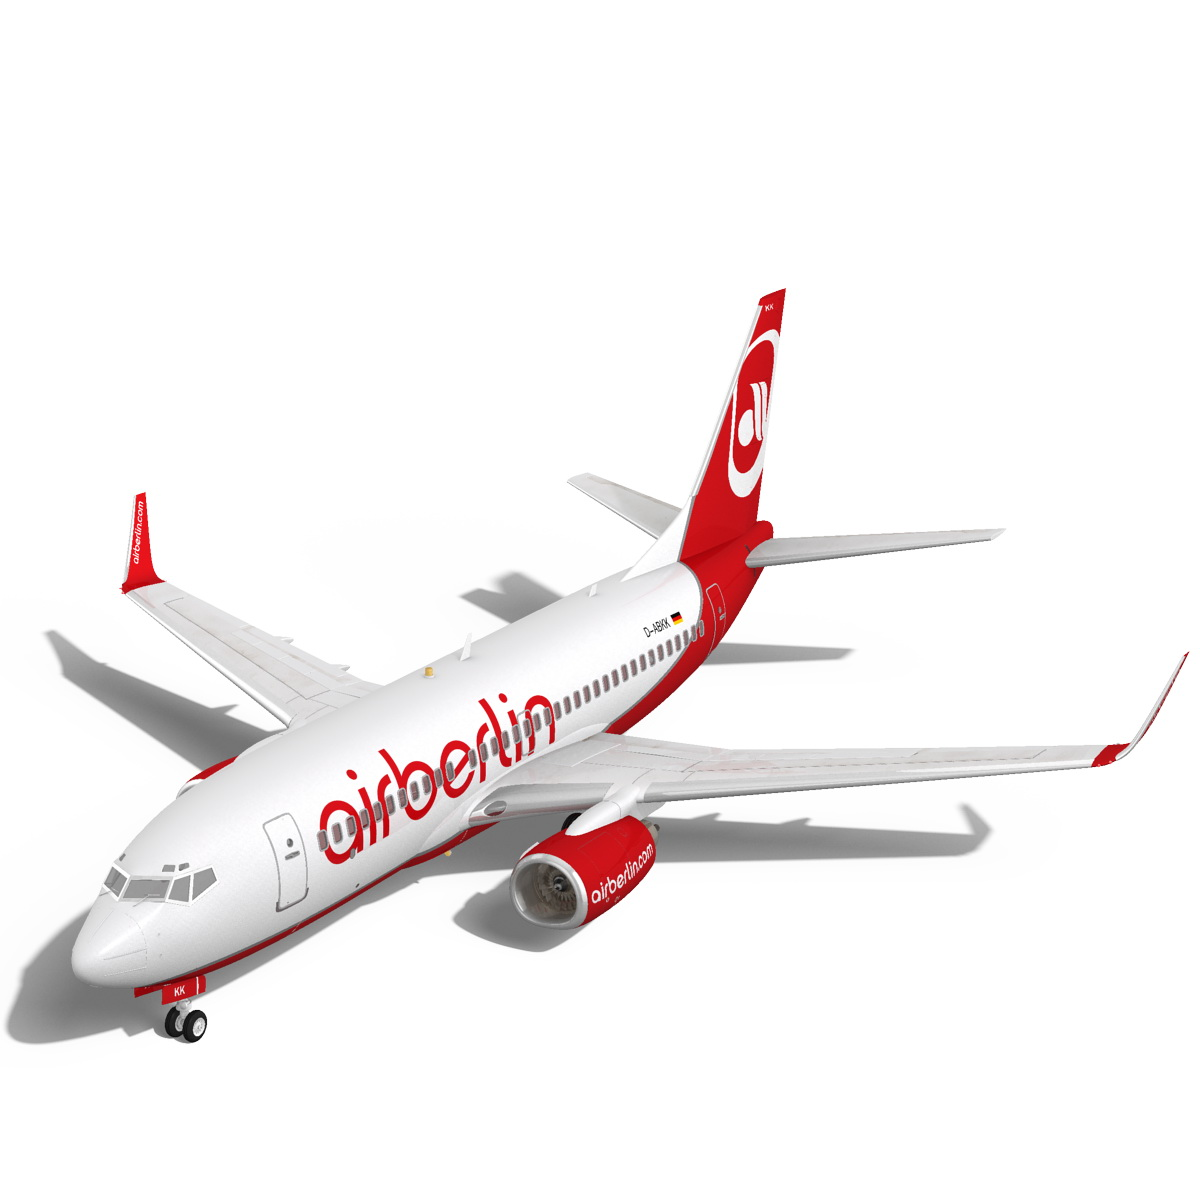 airberlin boeing 737-700w 3d model maks.